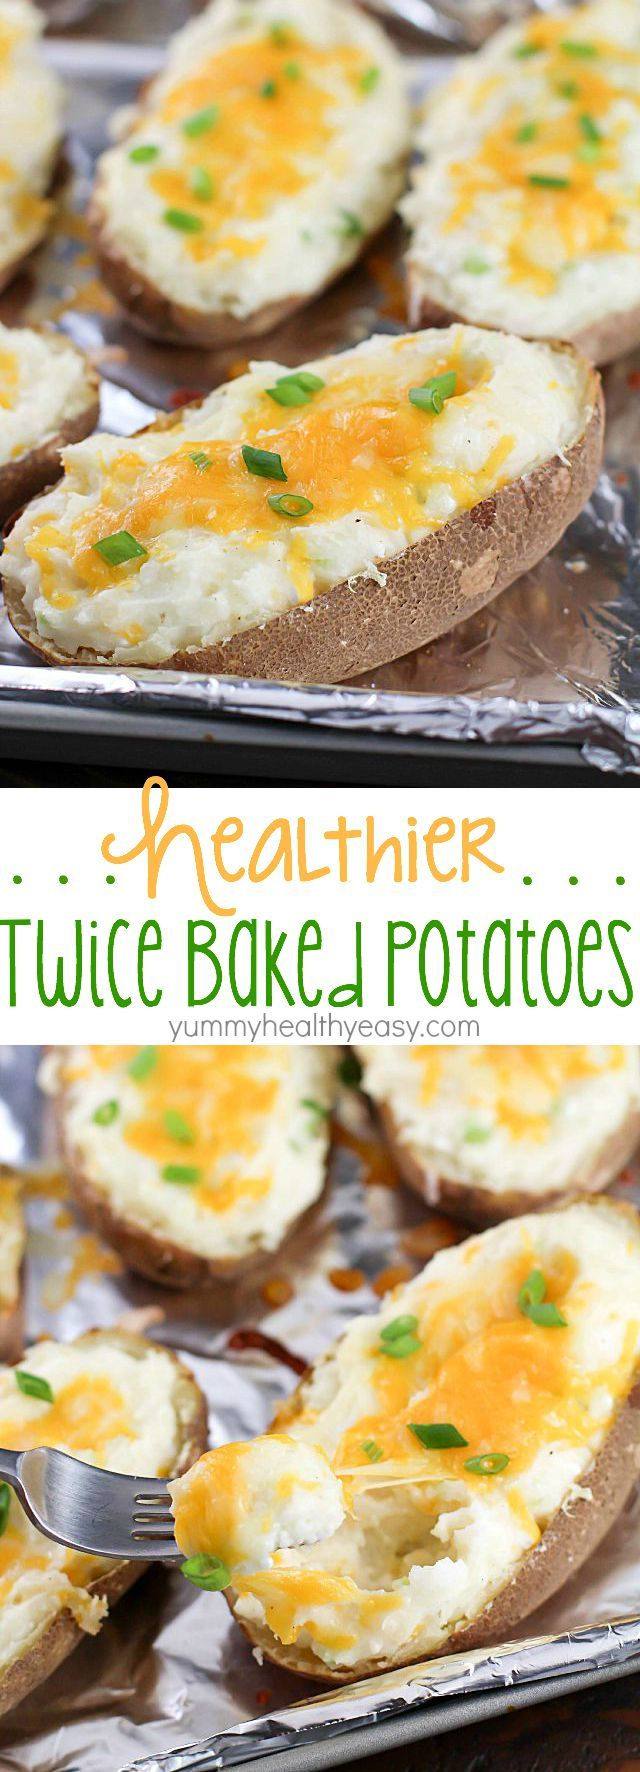 Craving a twice baked potato but don't want all the calories? Make some Healthy Twice Baked Potatoes! With few ingredients and double the flavor, you will LOVE these!